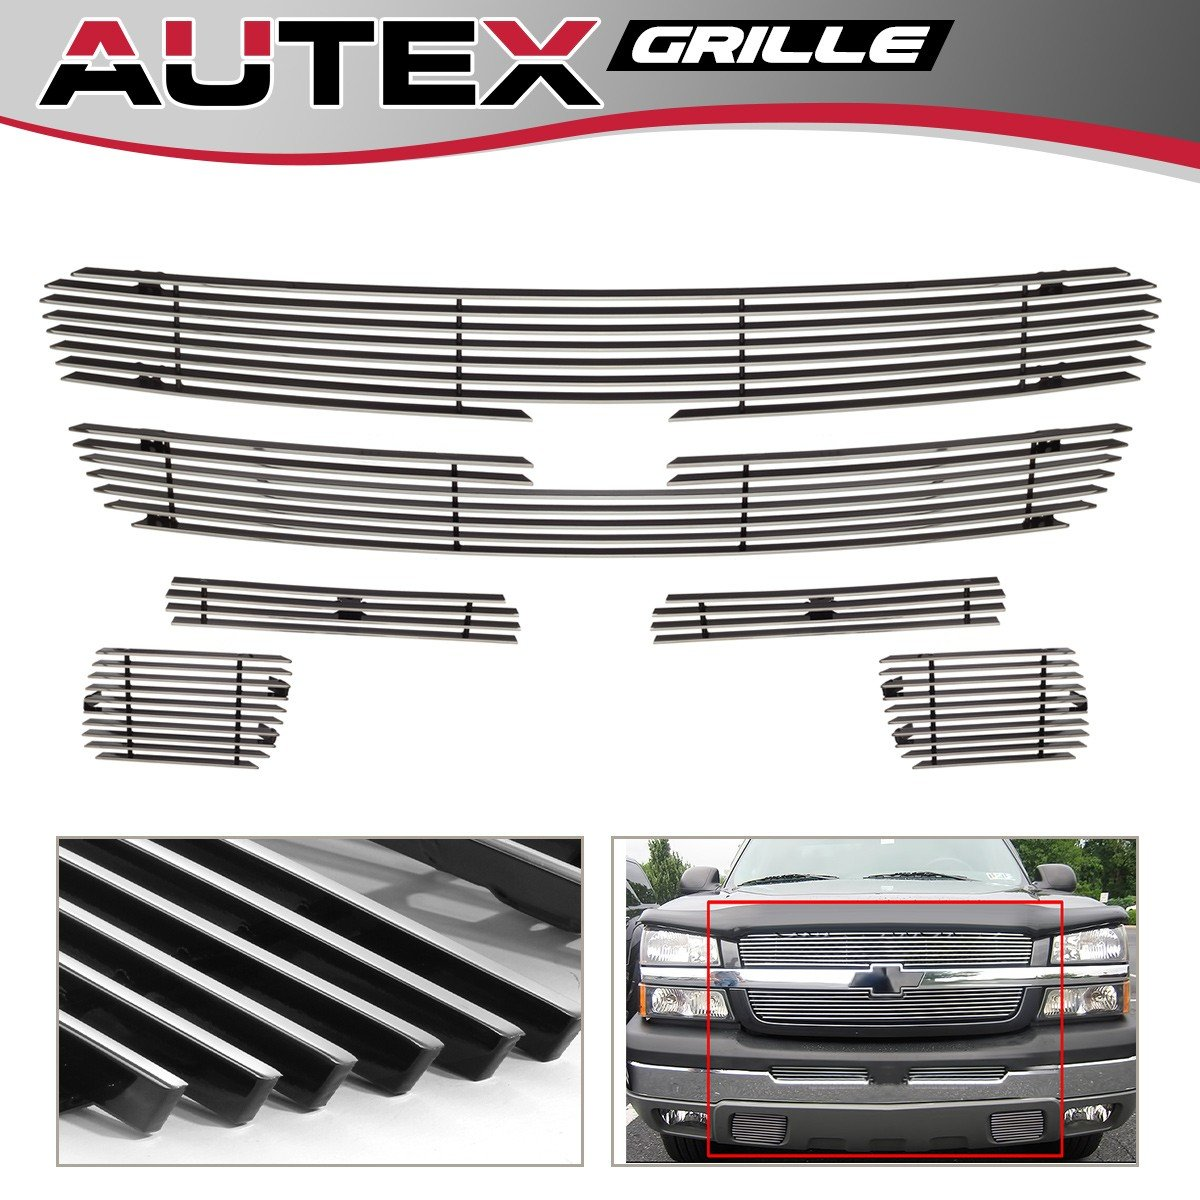 AUTEX Main Upper Grille + Air Dam Grille + Tow Hook Billet Grille Insert Combo Chrome Aluminum C67887A for 2003 - 2005 Chevy Silverado 1500/1500 HD, 2003-2004 Chevy Silverado 2500/3500/2500 HD